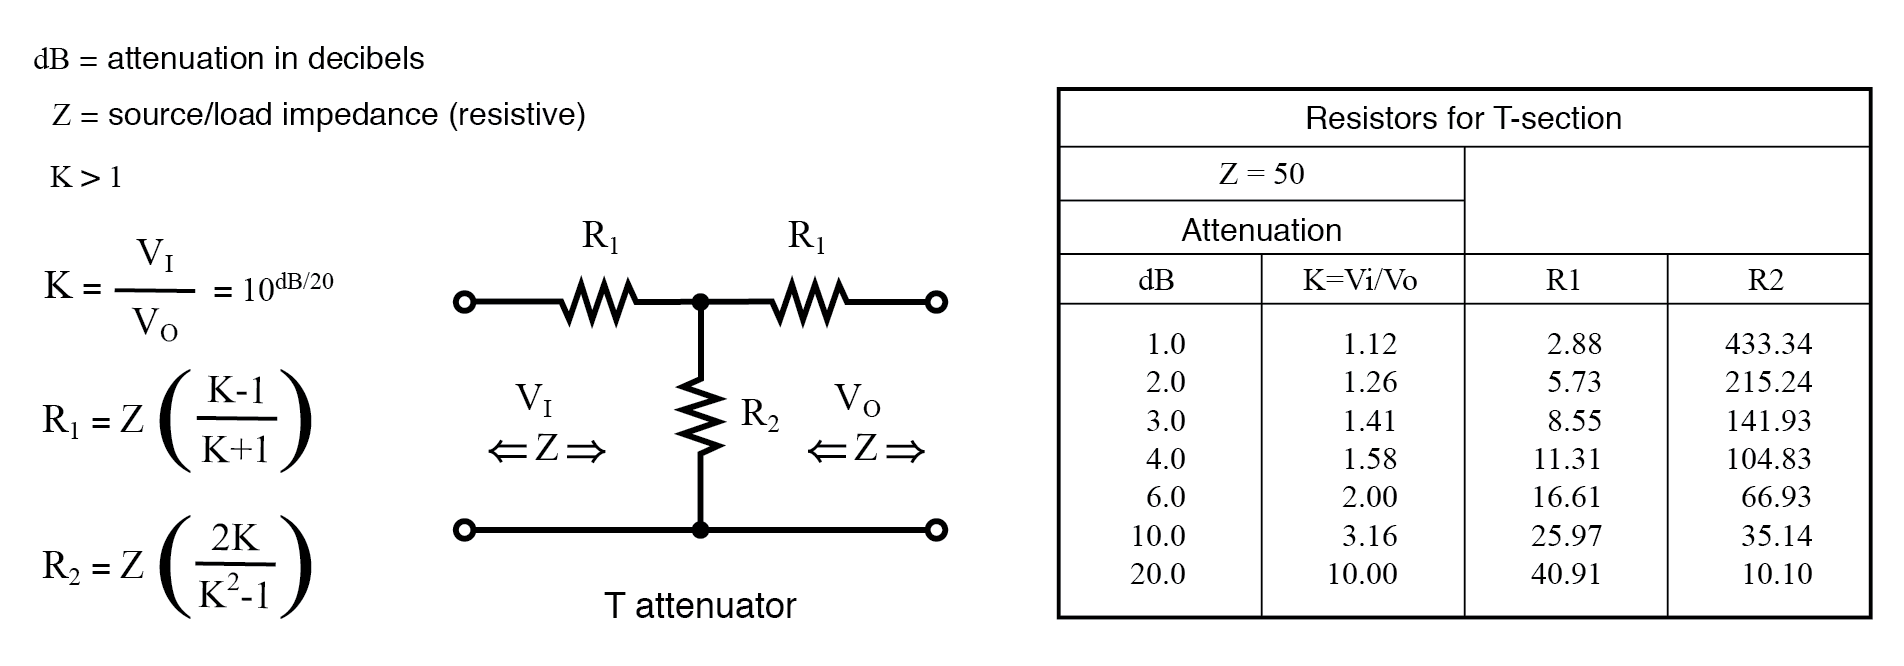 Formulas for T-section attenuator resistors, given K, the voltage attenuation ratio, and ZI = ZO = 50 Ω.